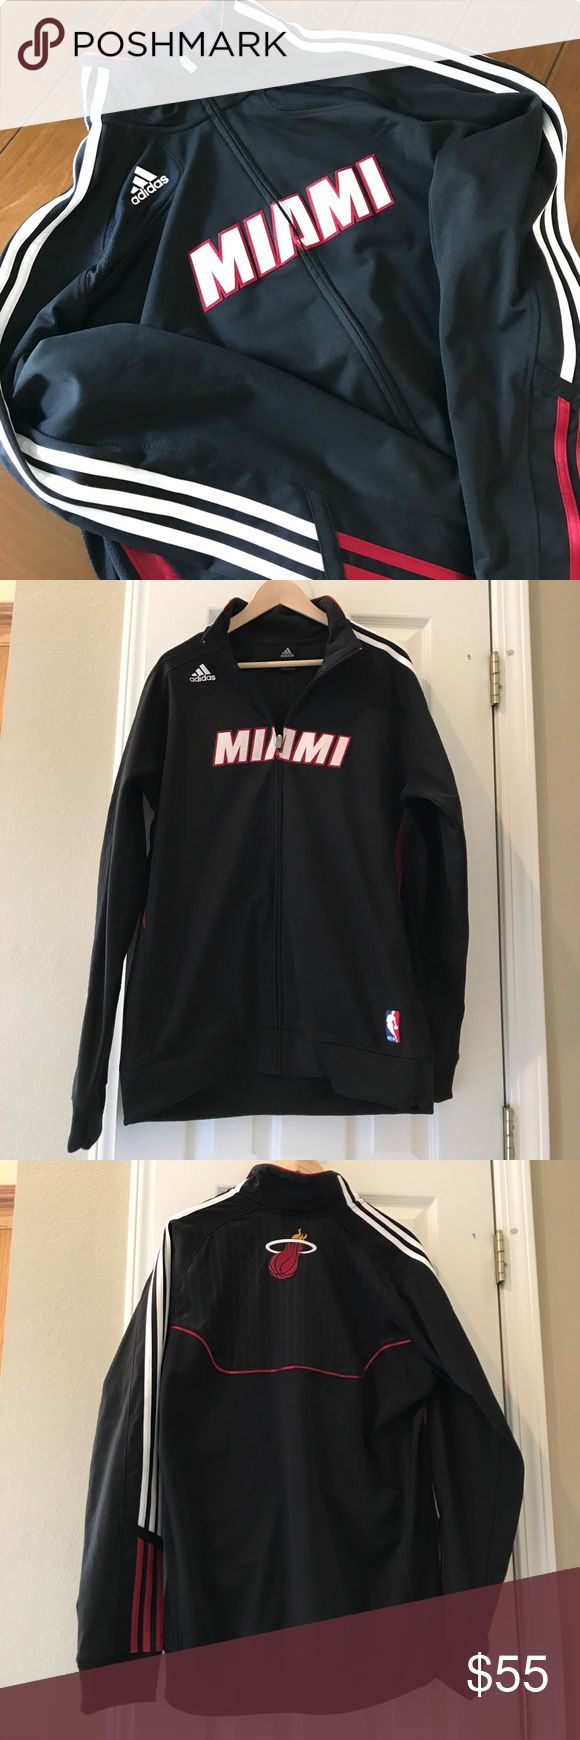 NWOT|{adidas} Miami Heat Basketball 🏀 Jacket Brand New! Perfect for all the upcoming Heat games! Go Heat! 🏀🌴🌞 adidas Jackets & Coats